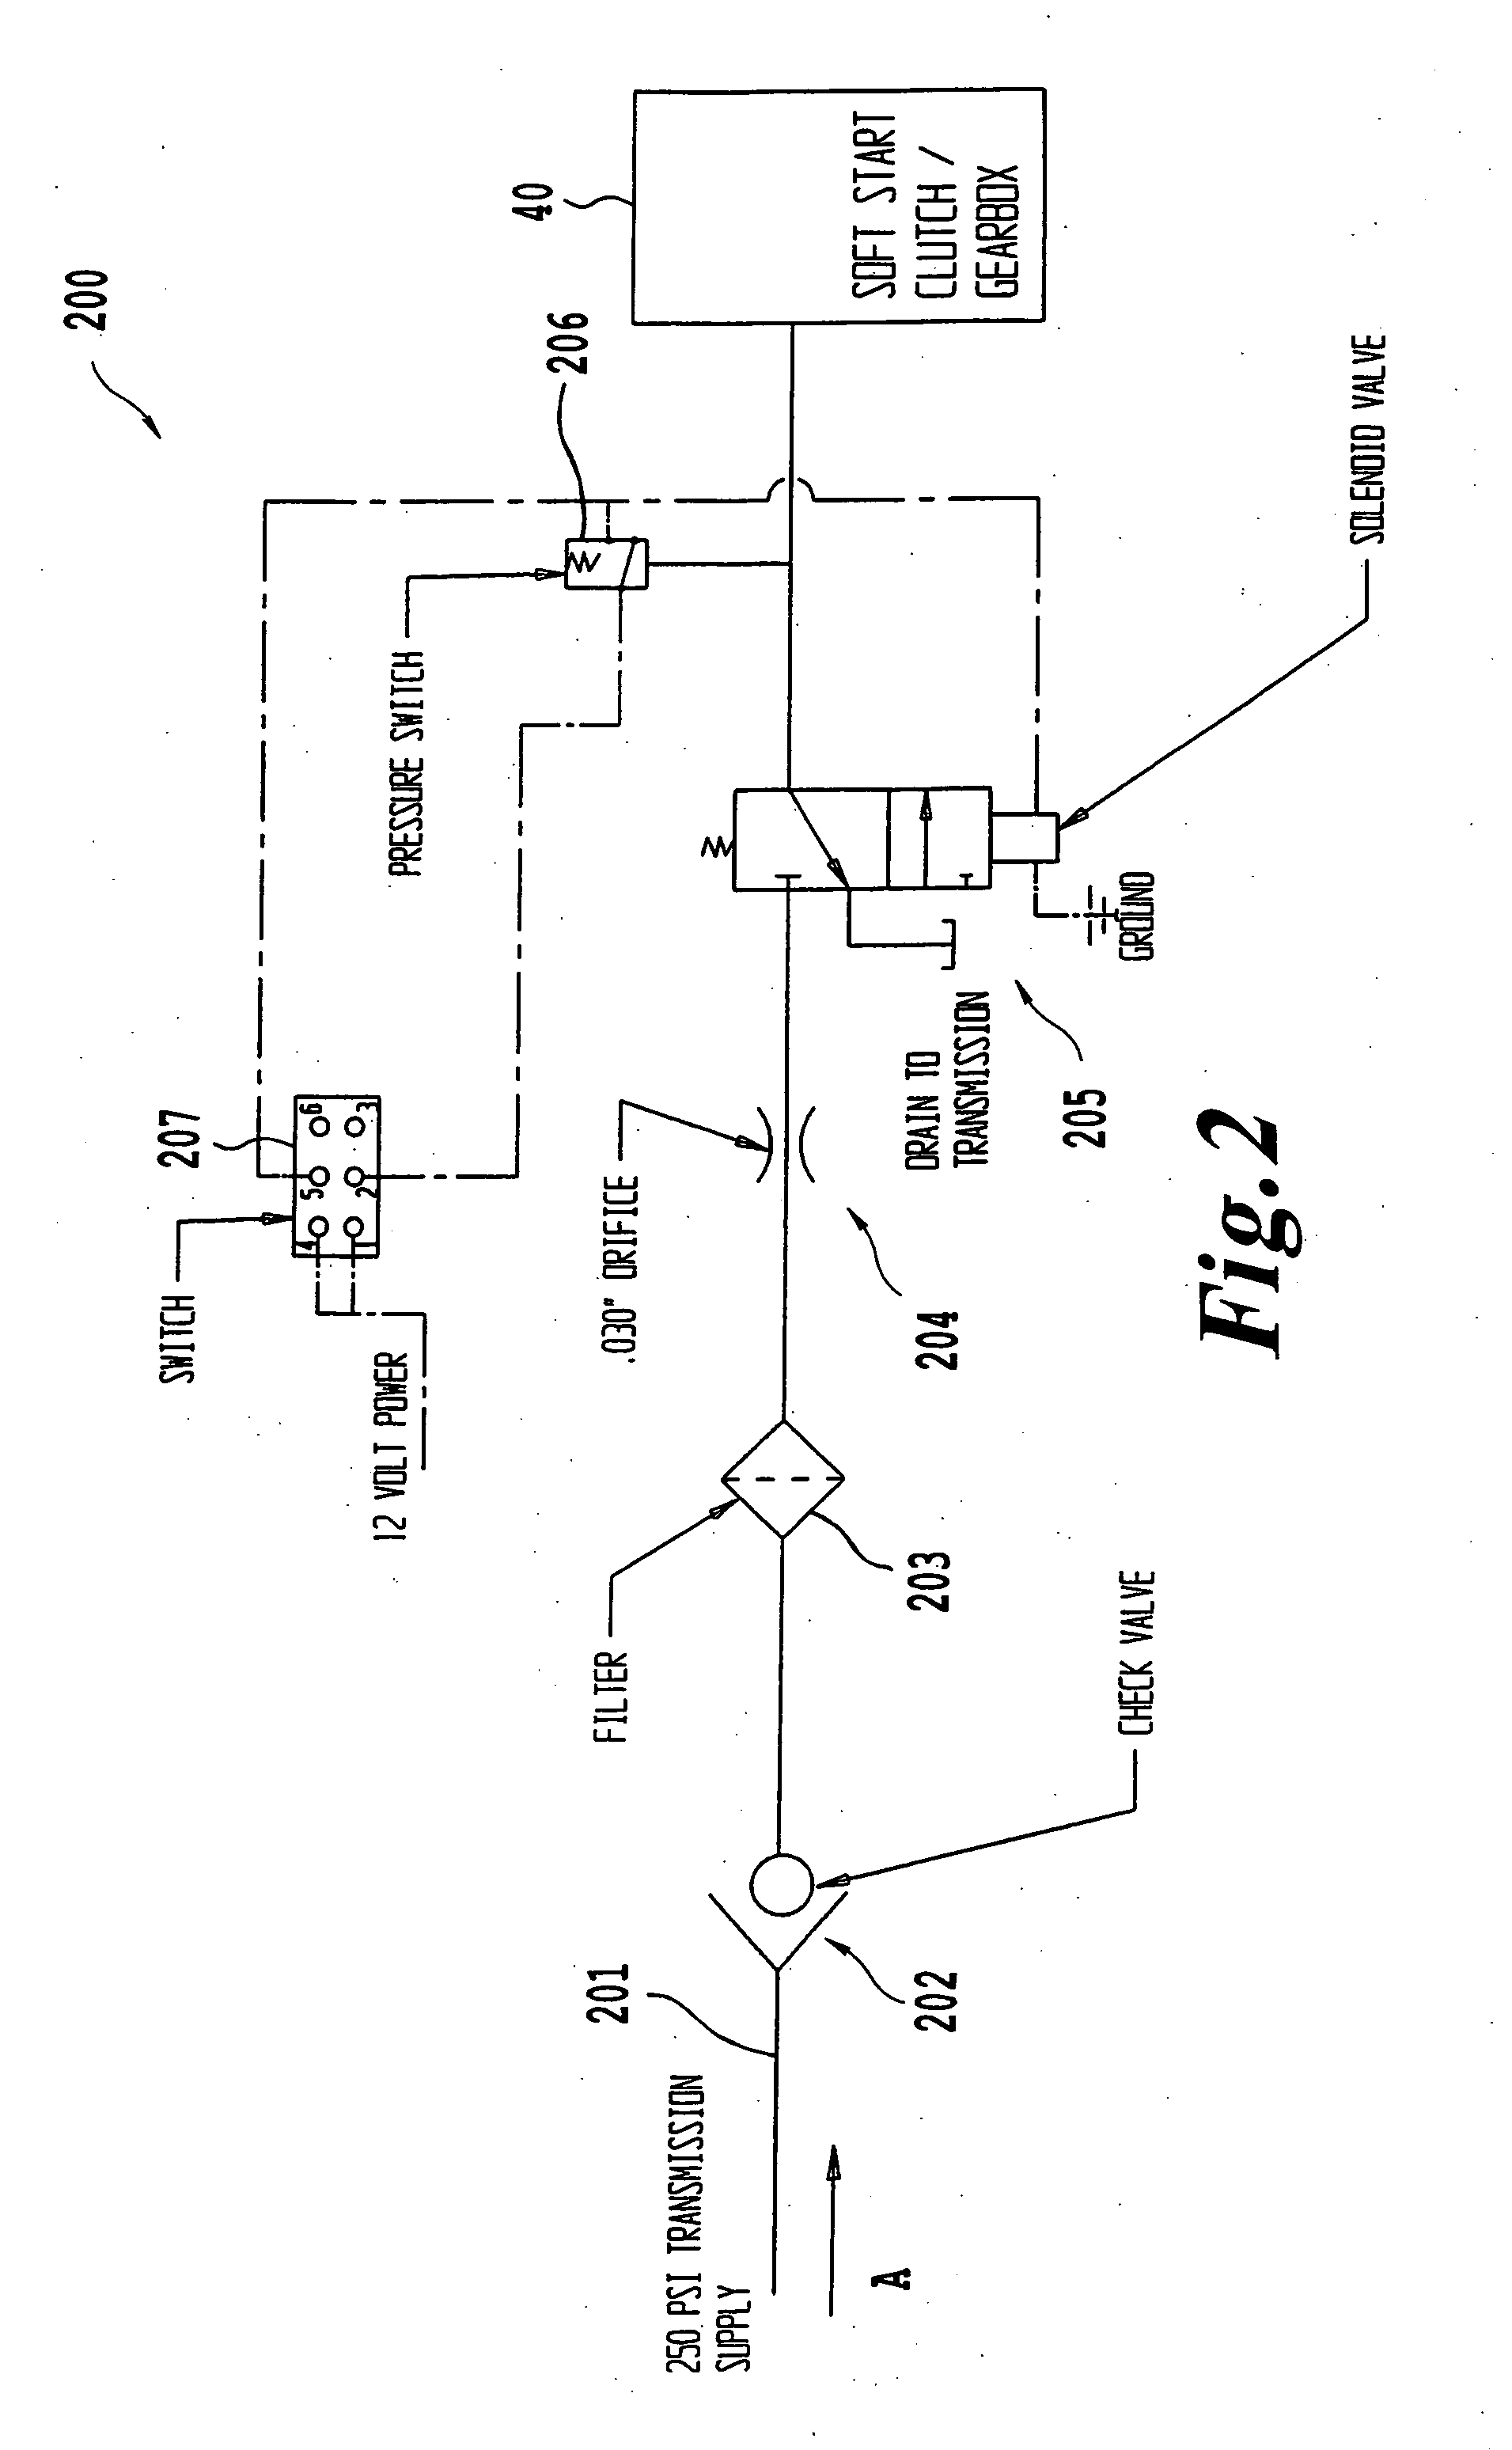 US20060214035A1 20060928 D00003 patent us20060214035 system and method of implementing a soft PTO Switch Wiring Diagram for Massey Furgeson at panicattacktreatment.co